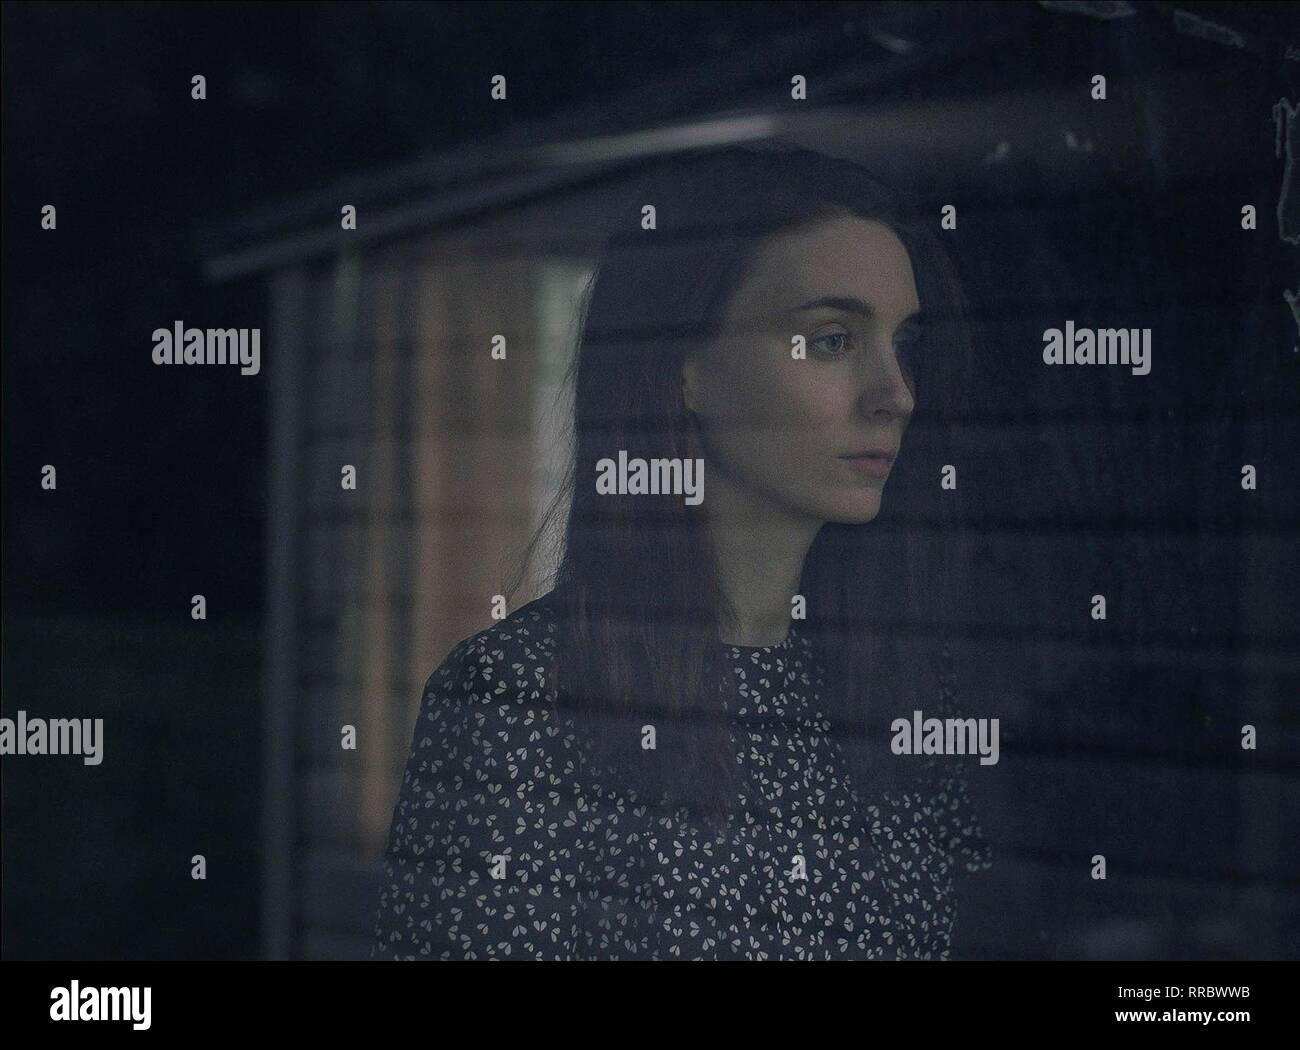 A GHOST STORY, ROONEY MARA, 2017 - Stock Image